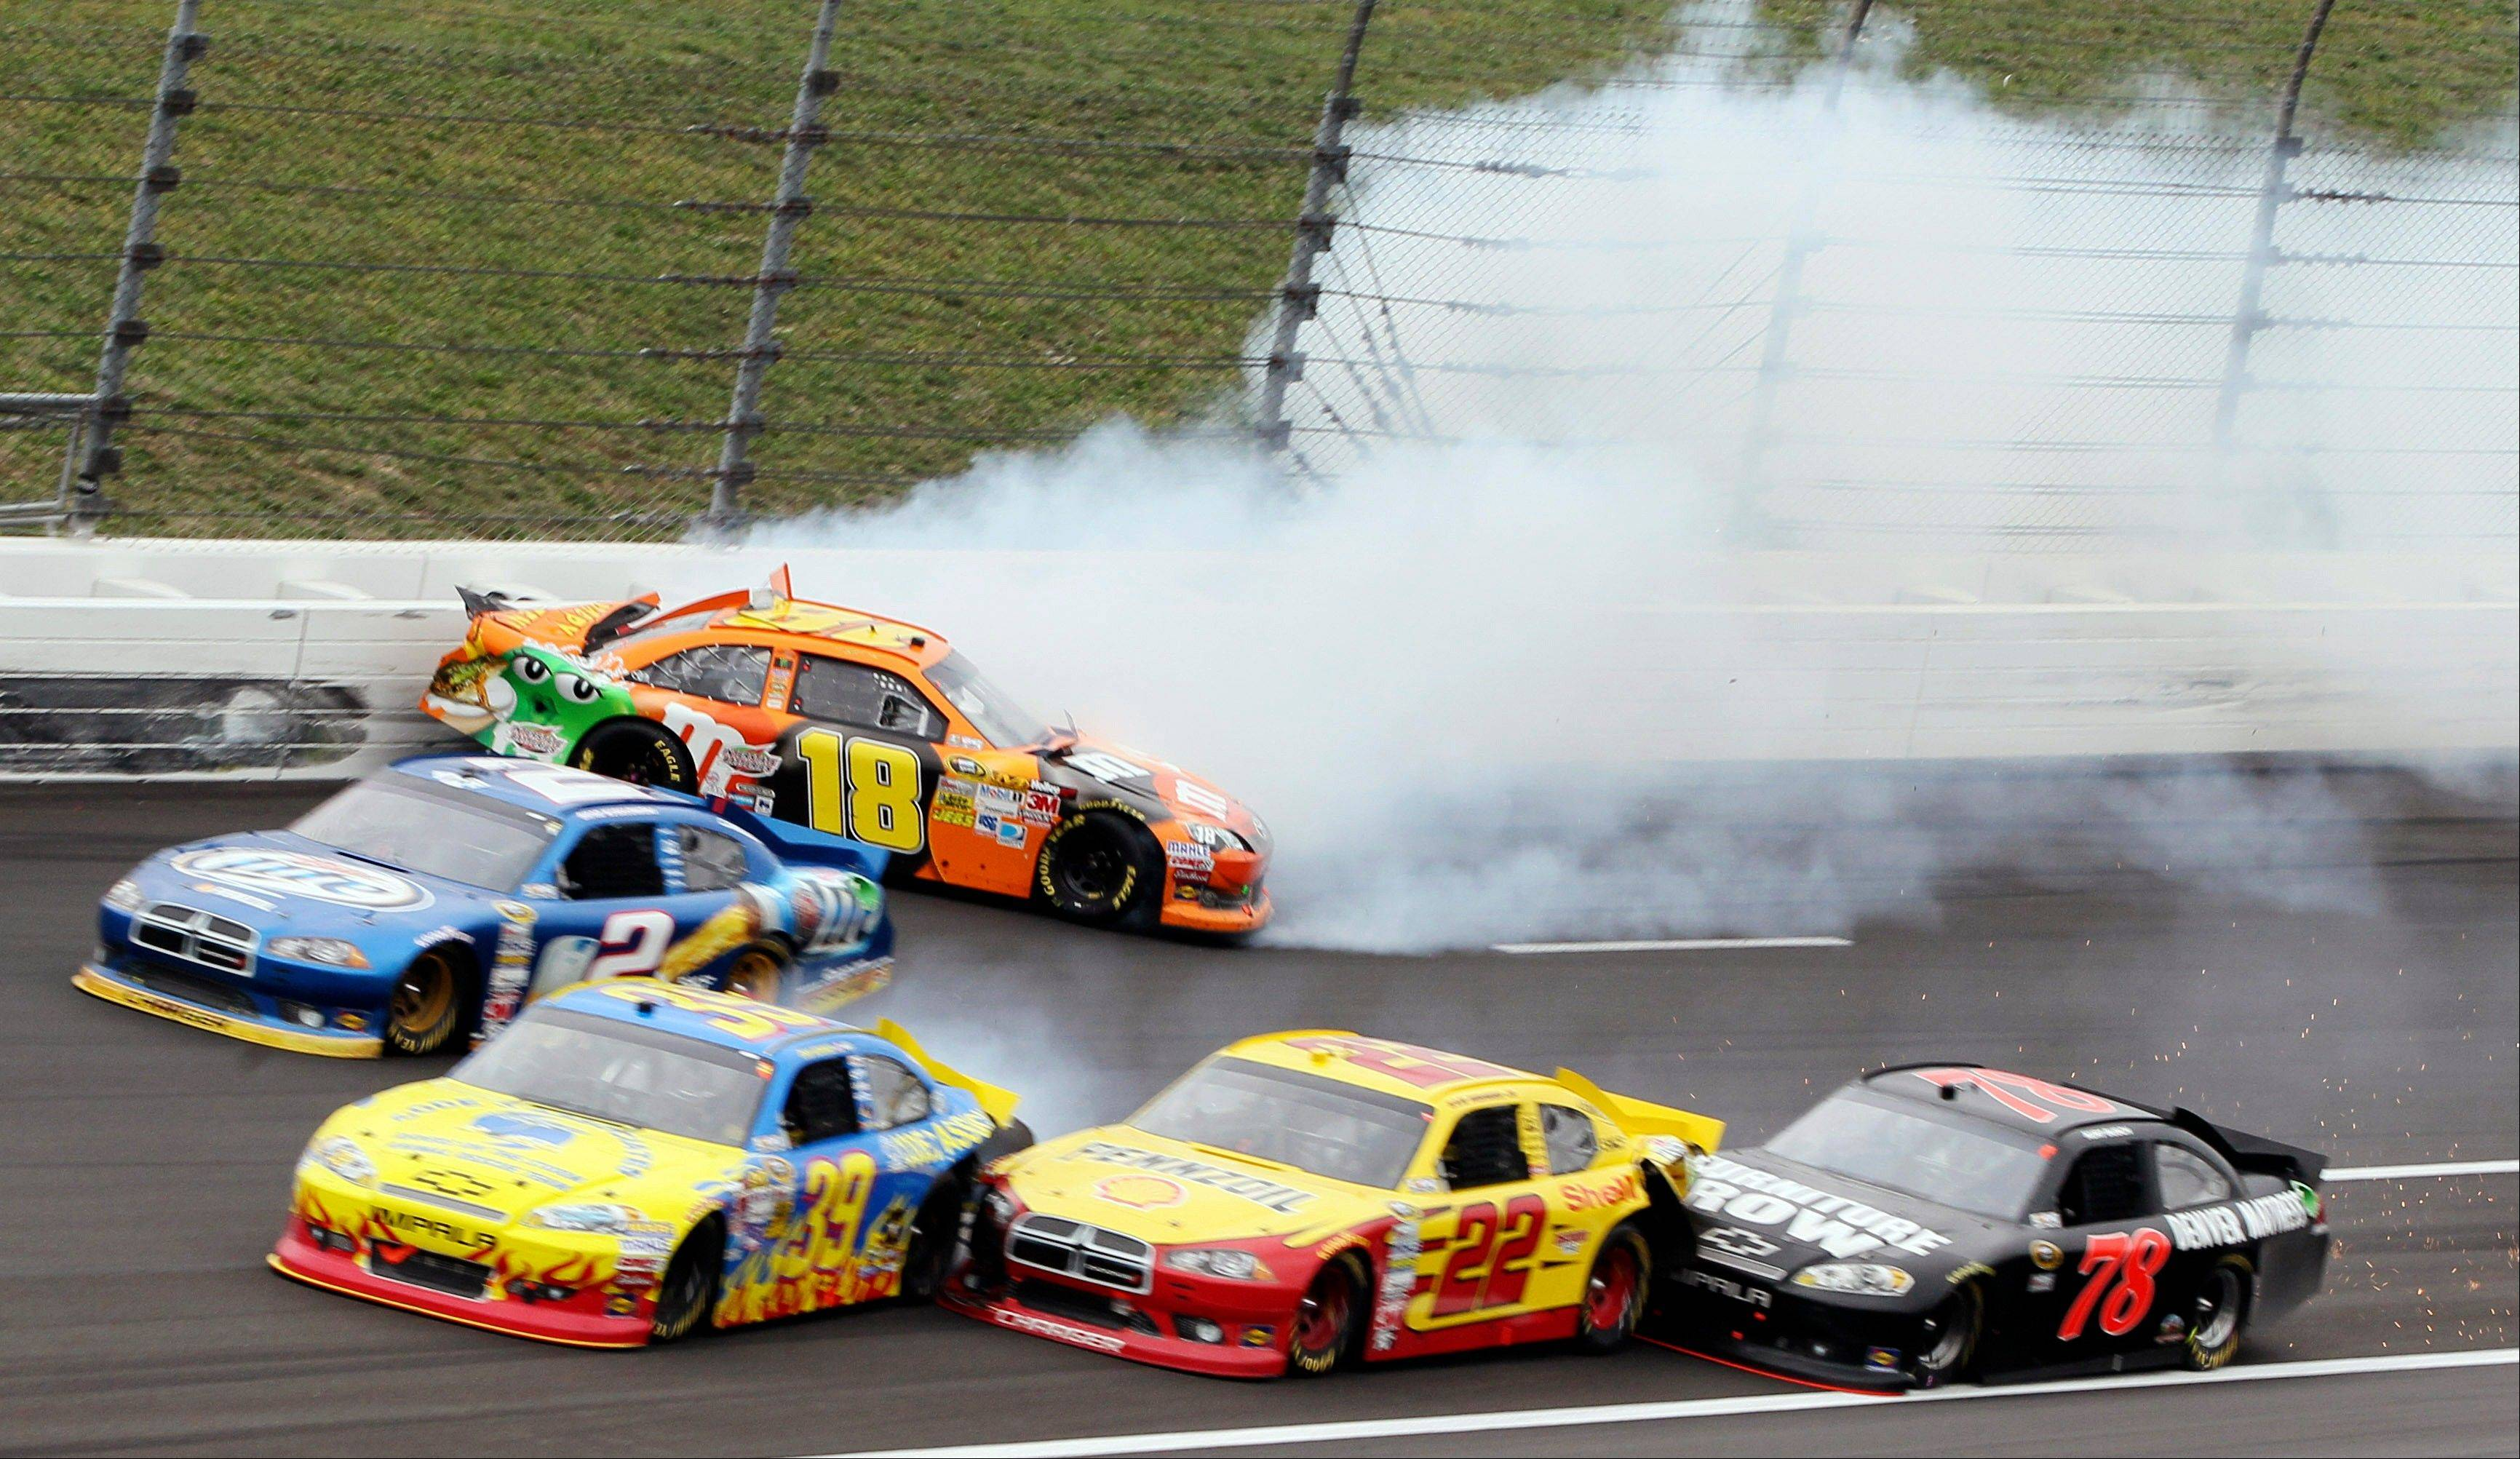 Kyle Busch (18) hits the wall while Brad Keselowski (2), Ryan Newman (39), Sam Hornish Jr. (22) and Kurt Busch (78) tangle trying to avoid the crash Sunday during a NASCAR Sprint Cup Series auto race at Kansas Speedway.